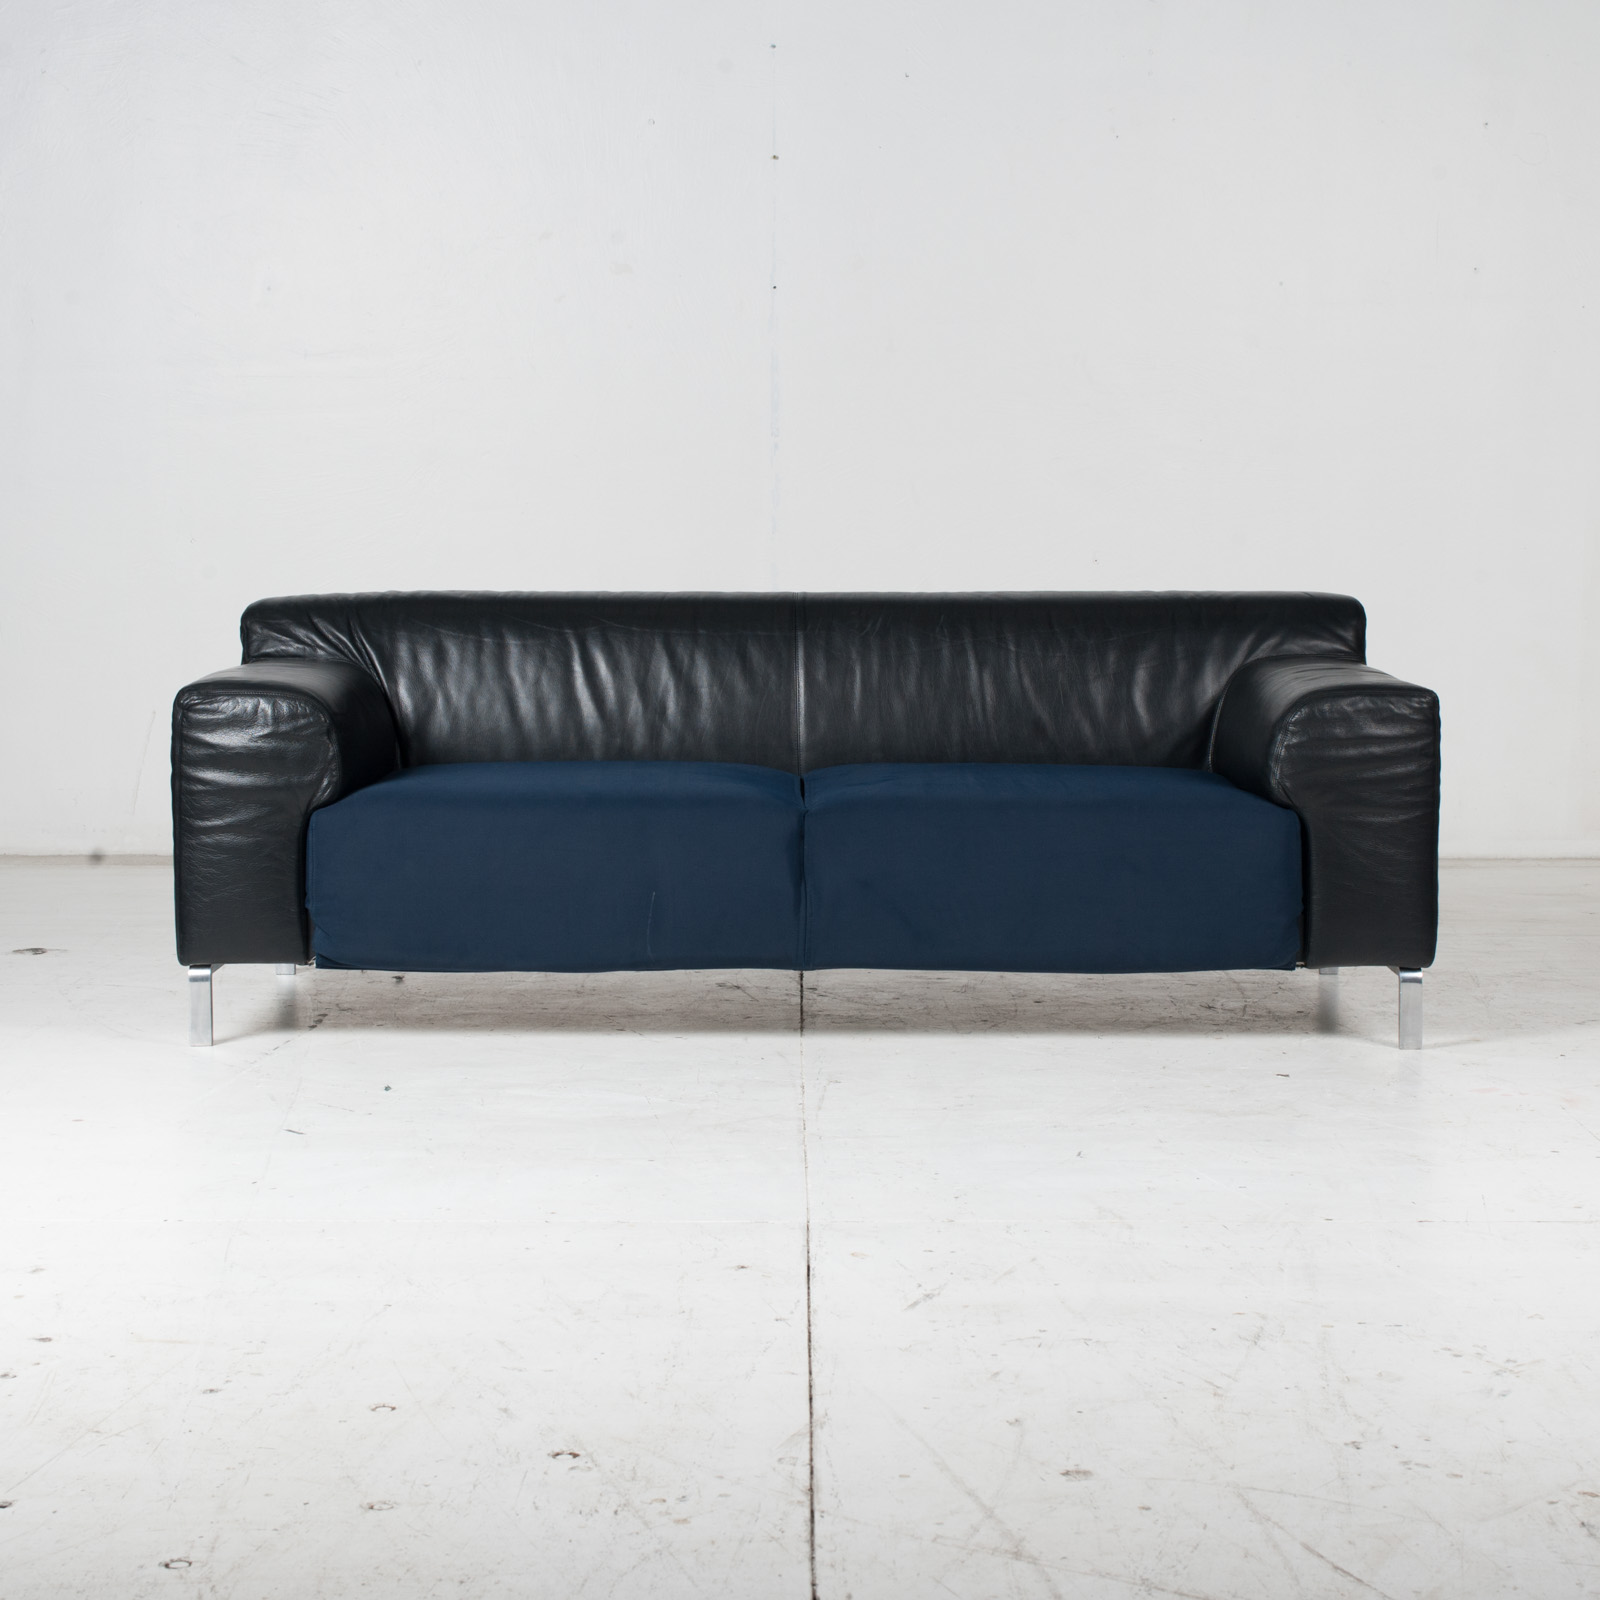 Model Greg 2 Seat Sofa By E. Progetti With Back Upholstered In Black Leather And Seat In Blue Fabric With Chrome Legs, 1960s, Italy 1